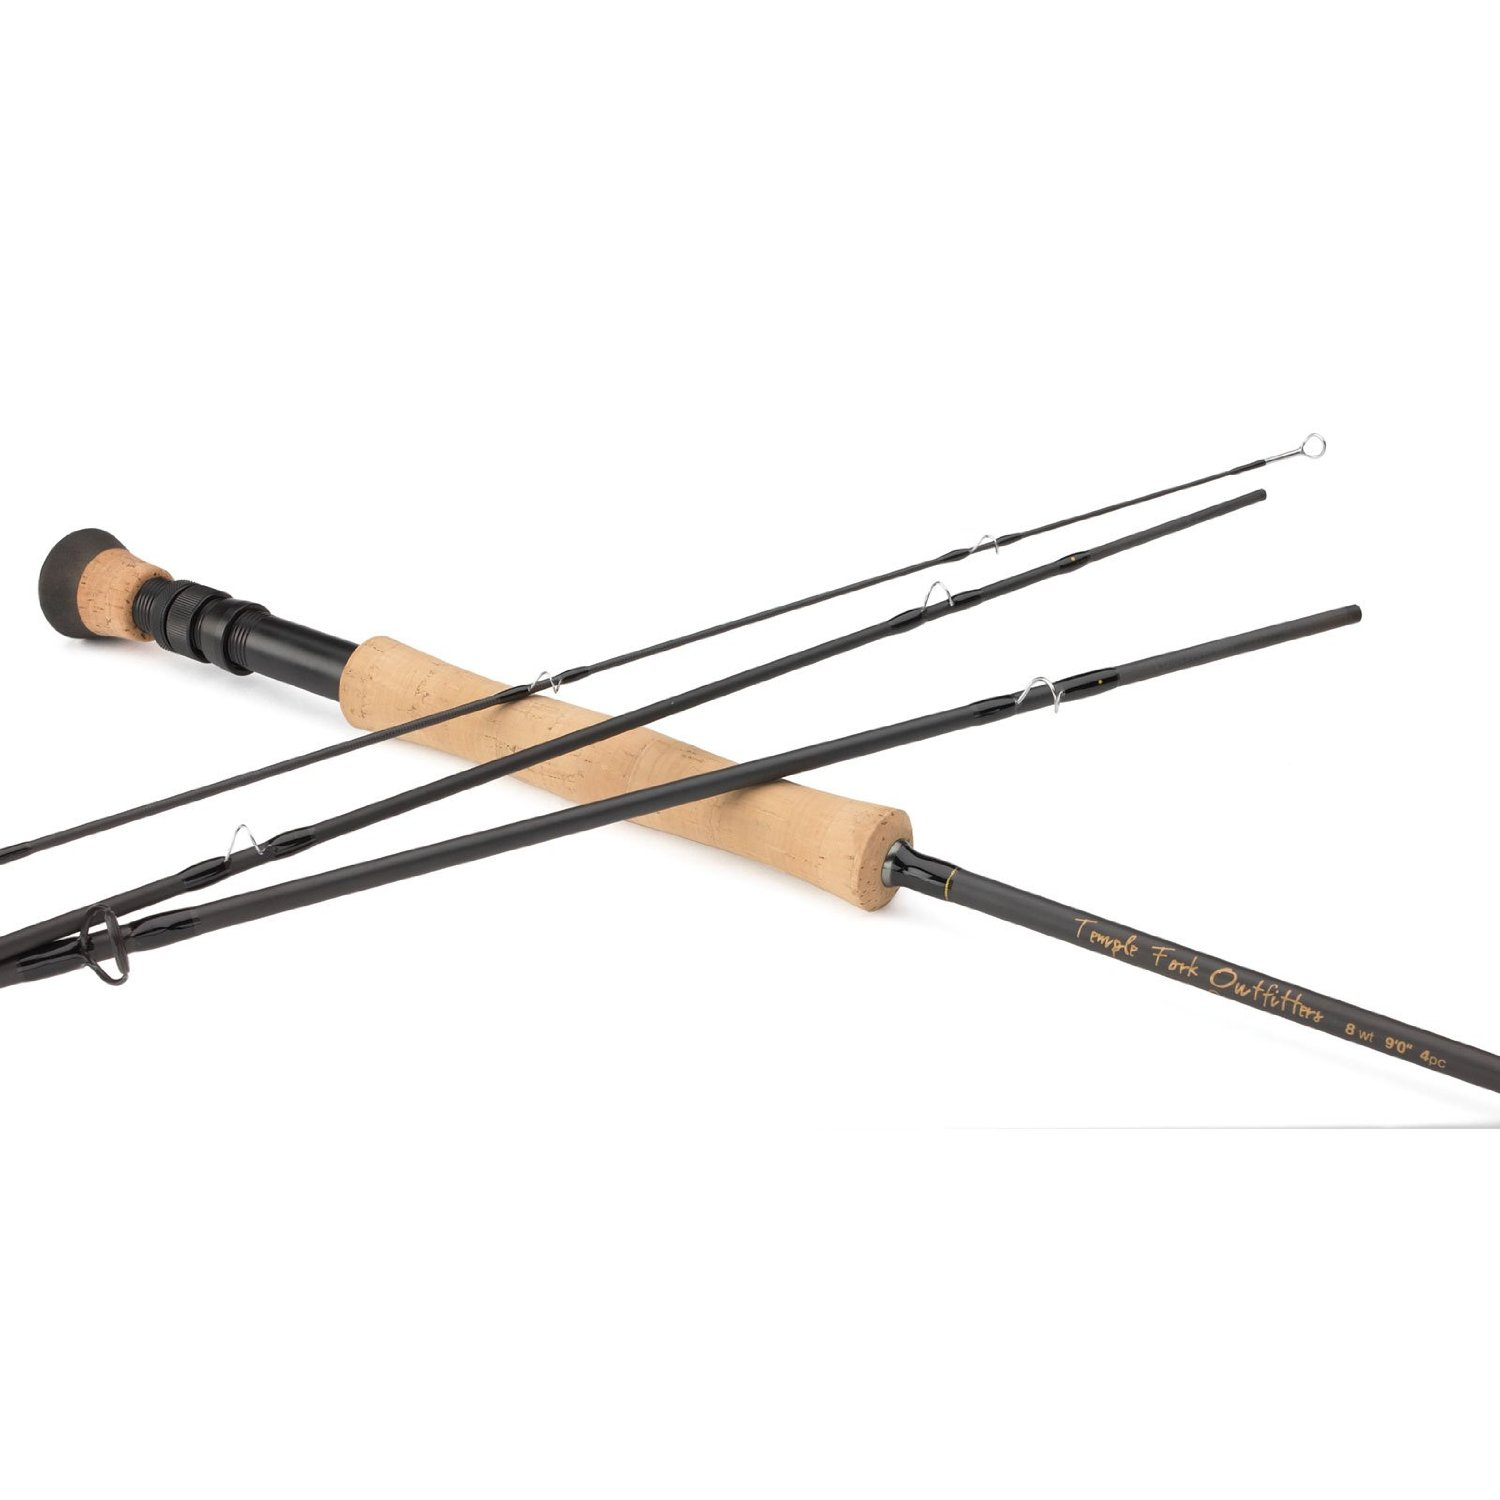 Tfo temple fork lefty kreh professional series ii graphite for Trout fishing pole